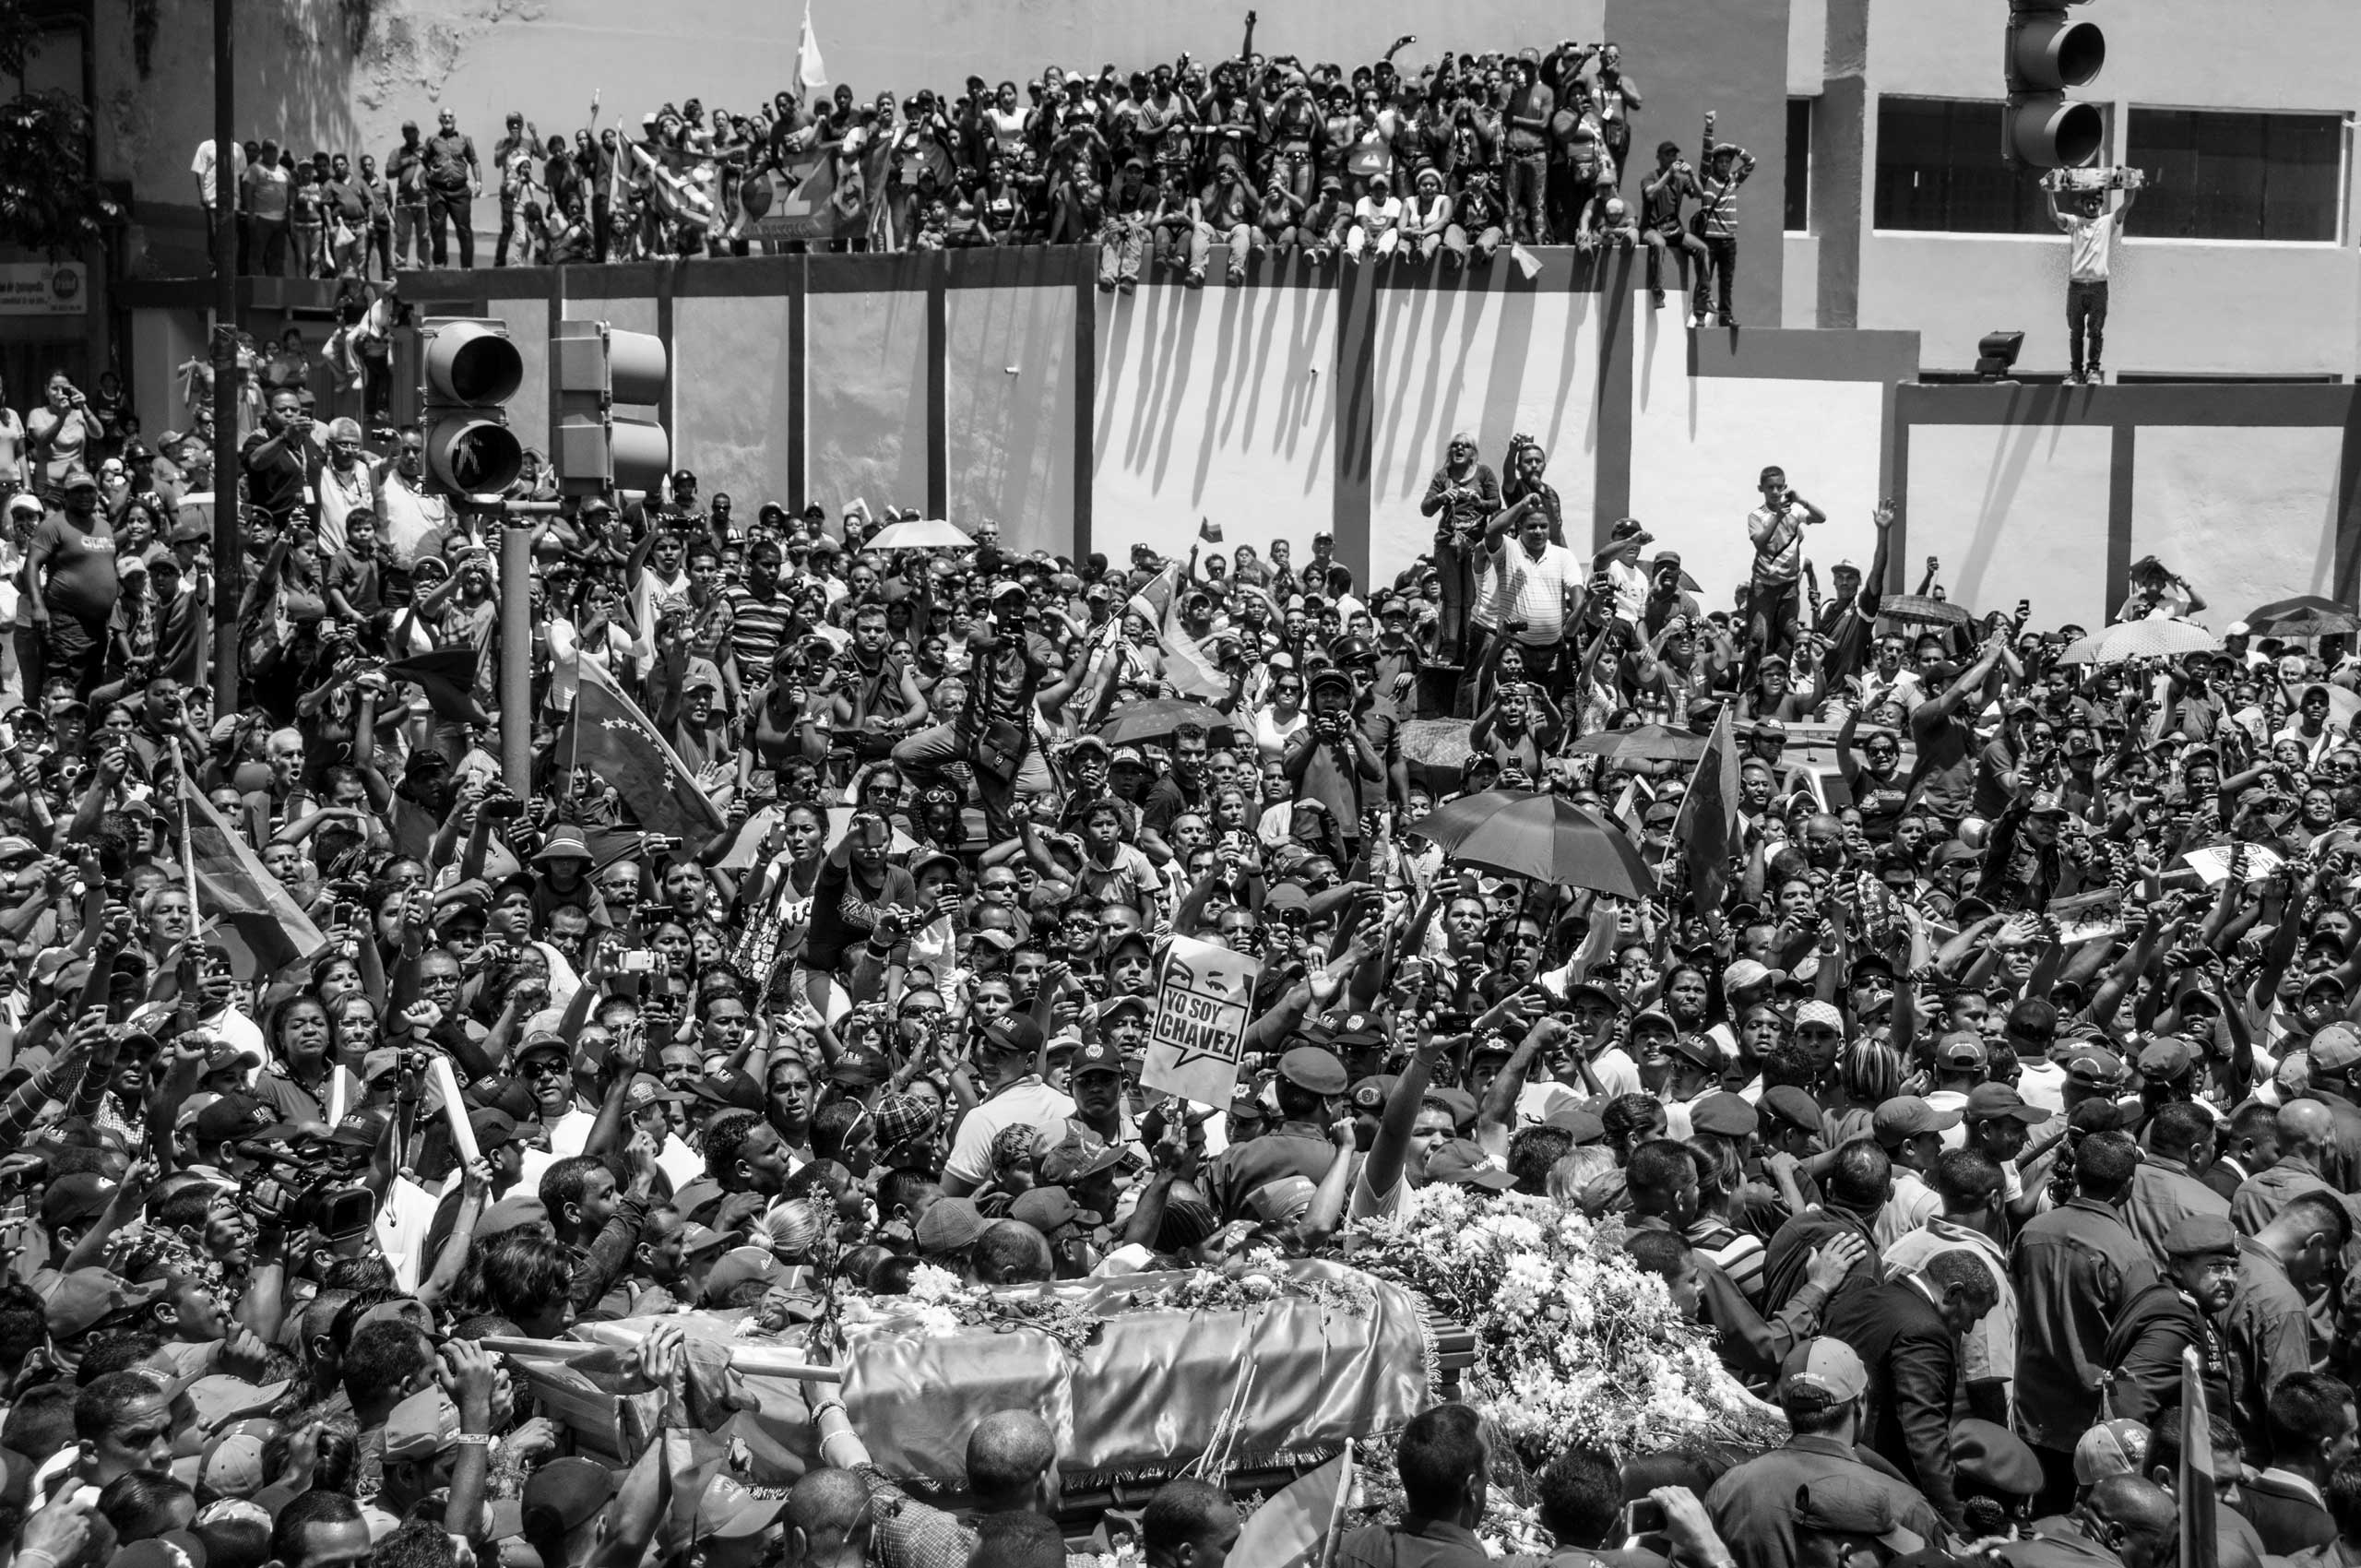 The coffin of former President Hugo Chávez is surrounded by thousands of people the day after he died. Caracas, March 2013.